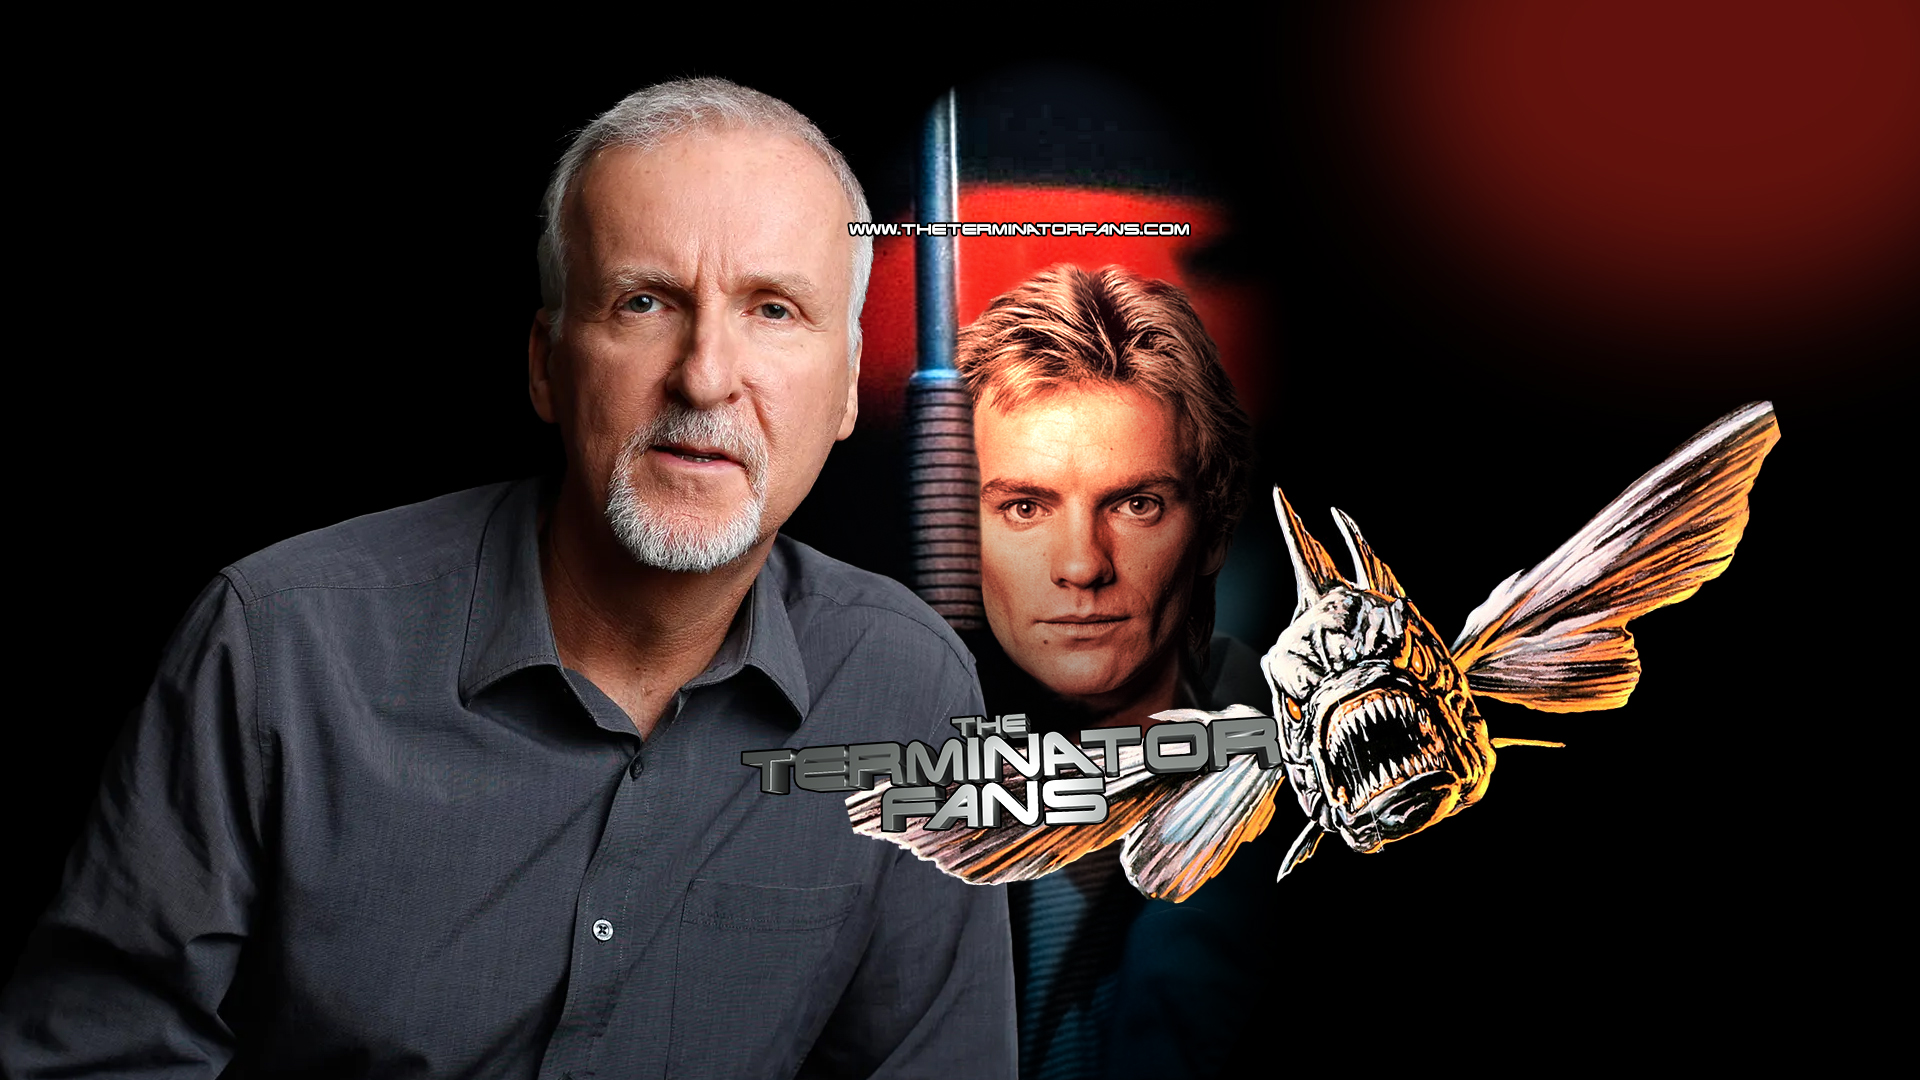 James Cameron Talks The Terminator Sting Casting as Kyle Reese